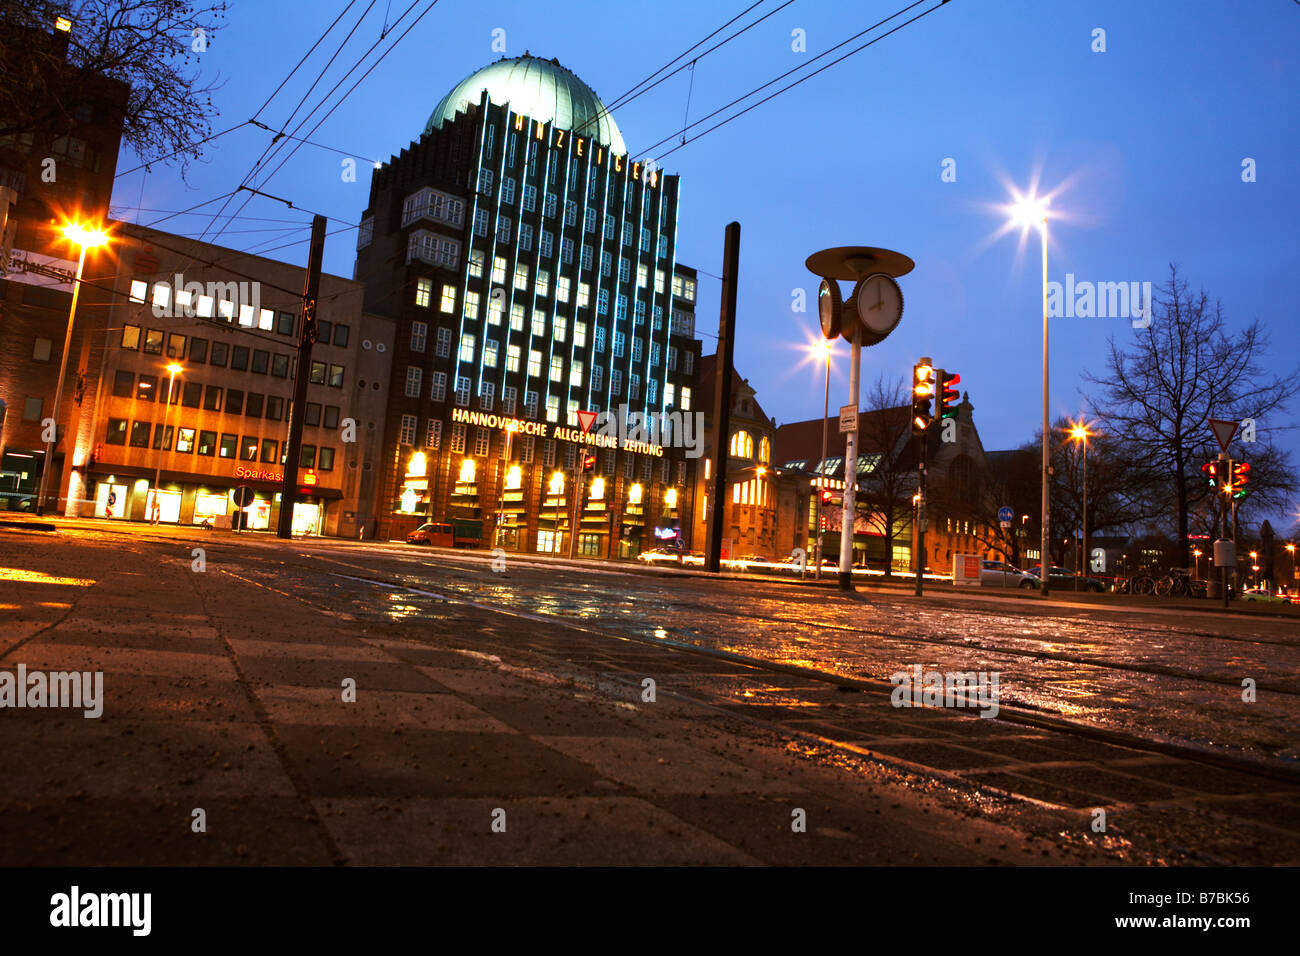 Anzeiger Hochhaus Building and tram station Steintor in Hanover at night. - Stock Image